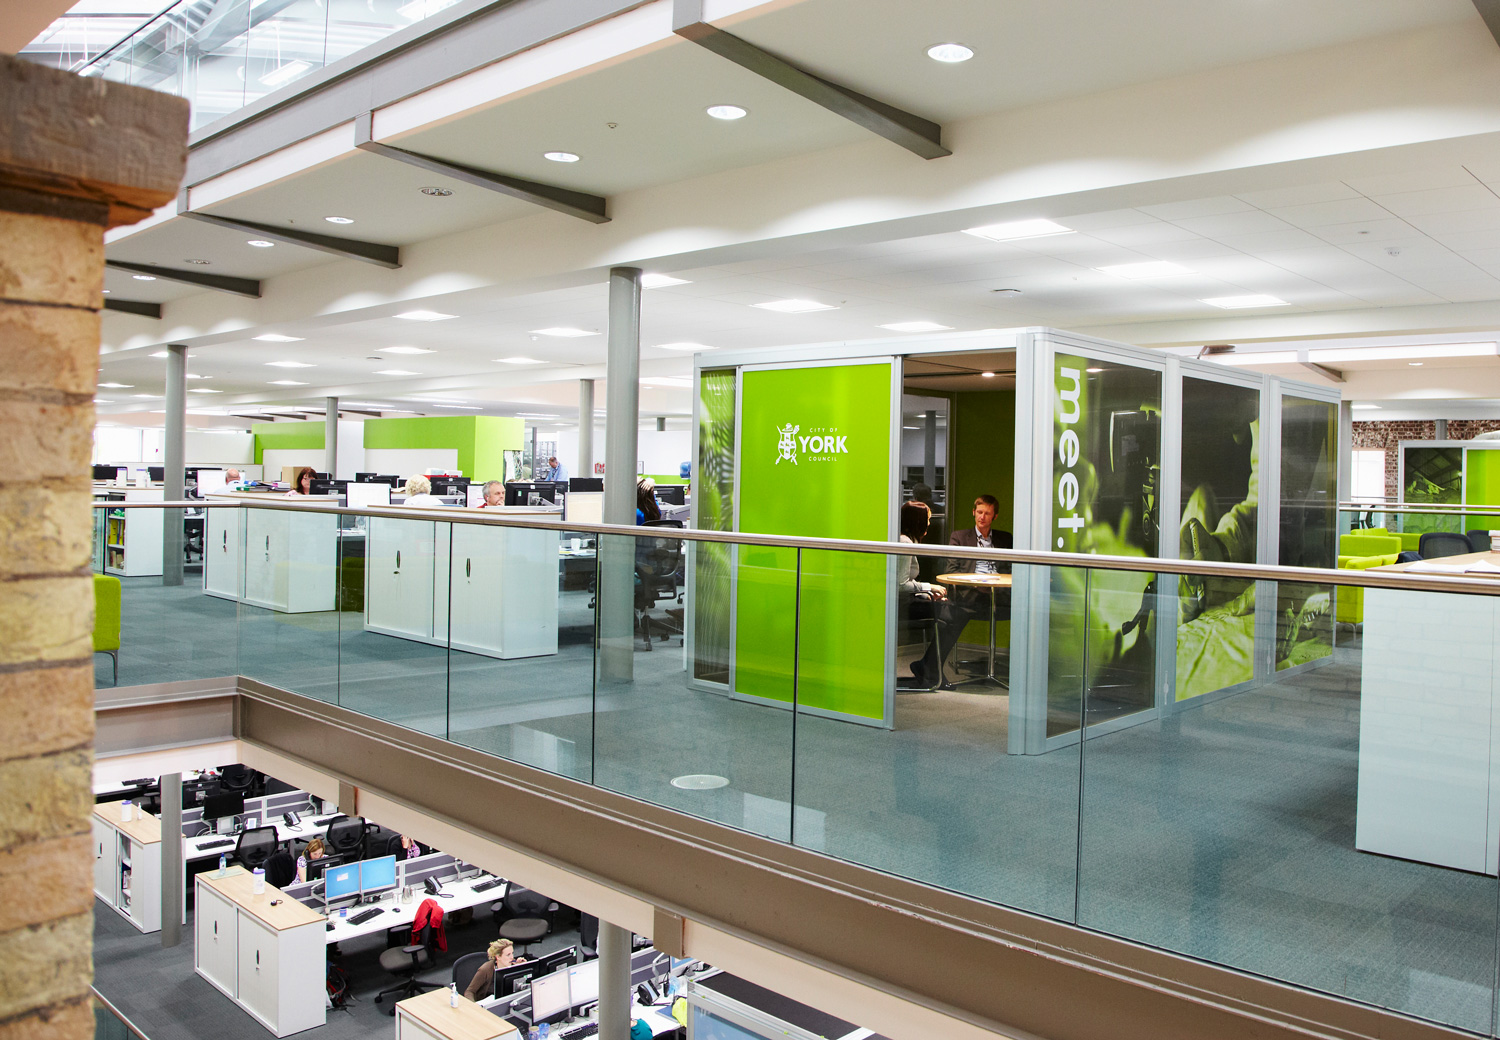 Bright green meeting pod with graphic glazing manifestation